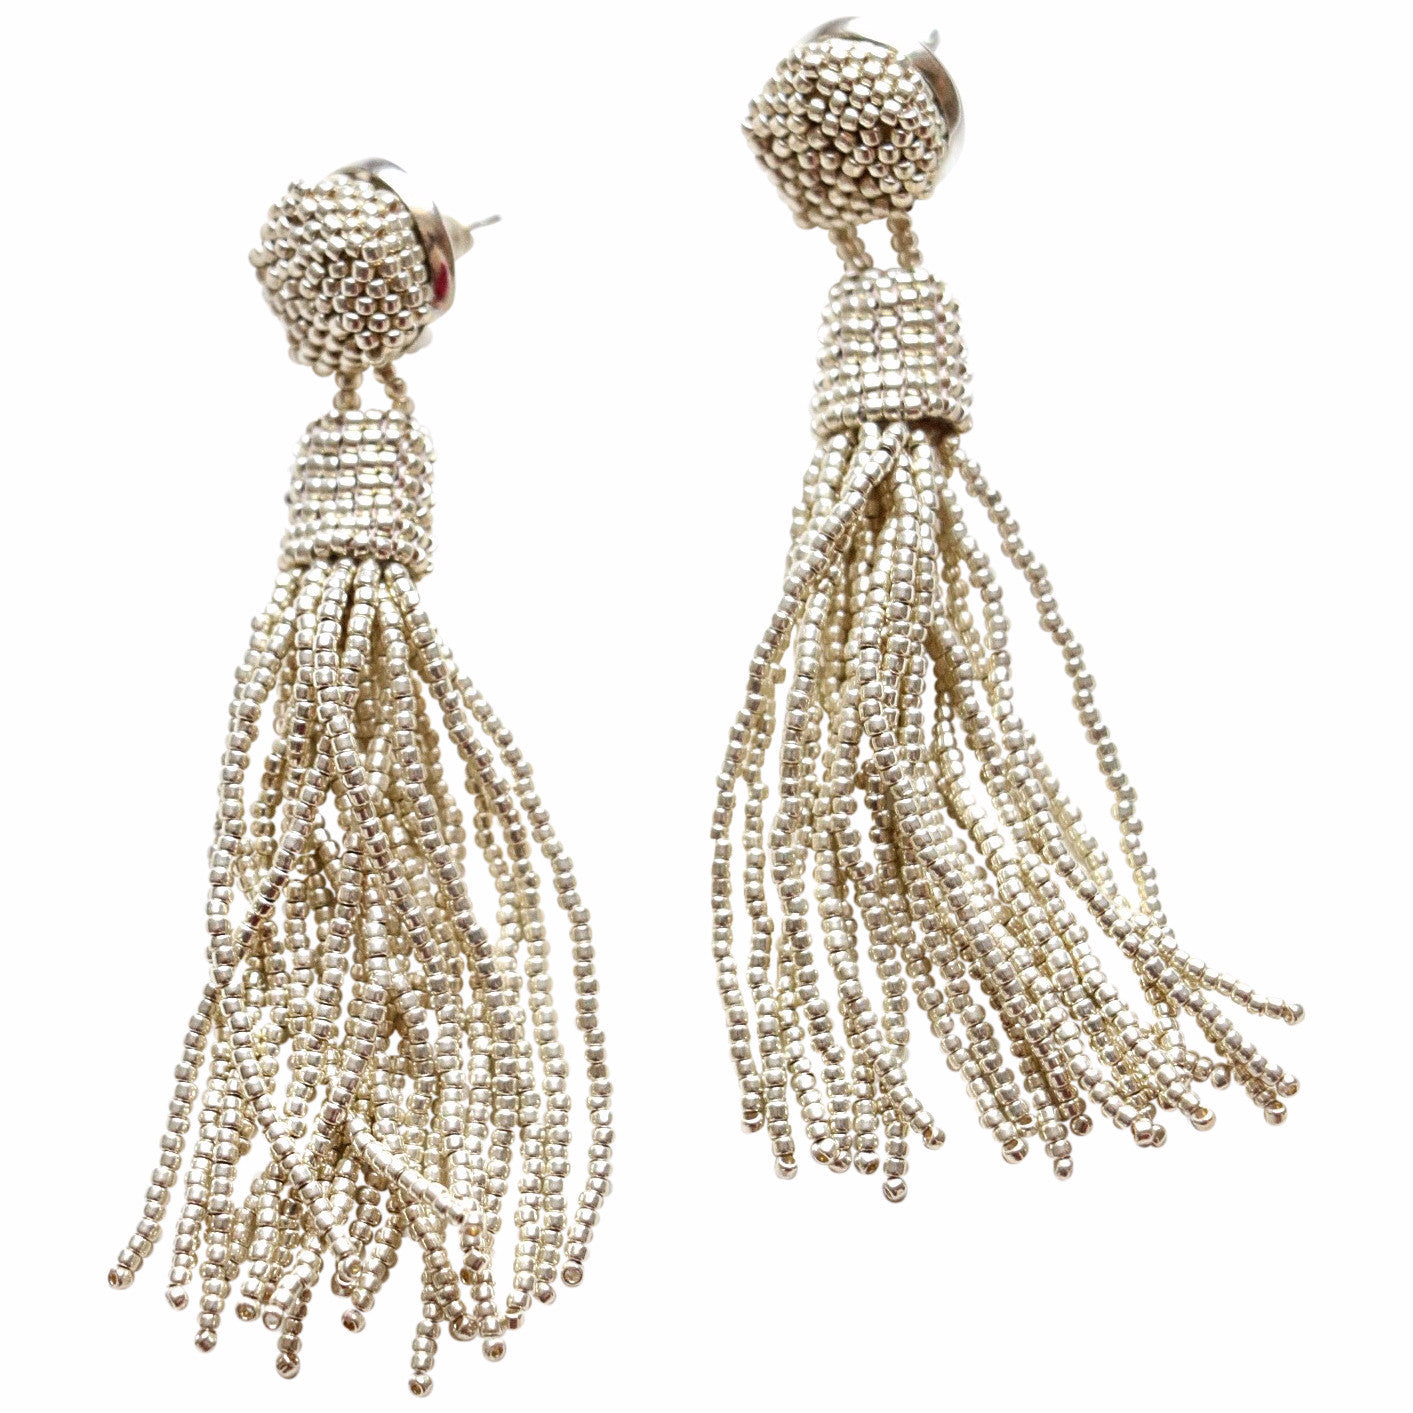 Fresh Silver Tassel Earrings – Molly Jane Designs GK13